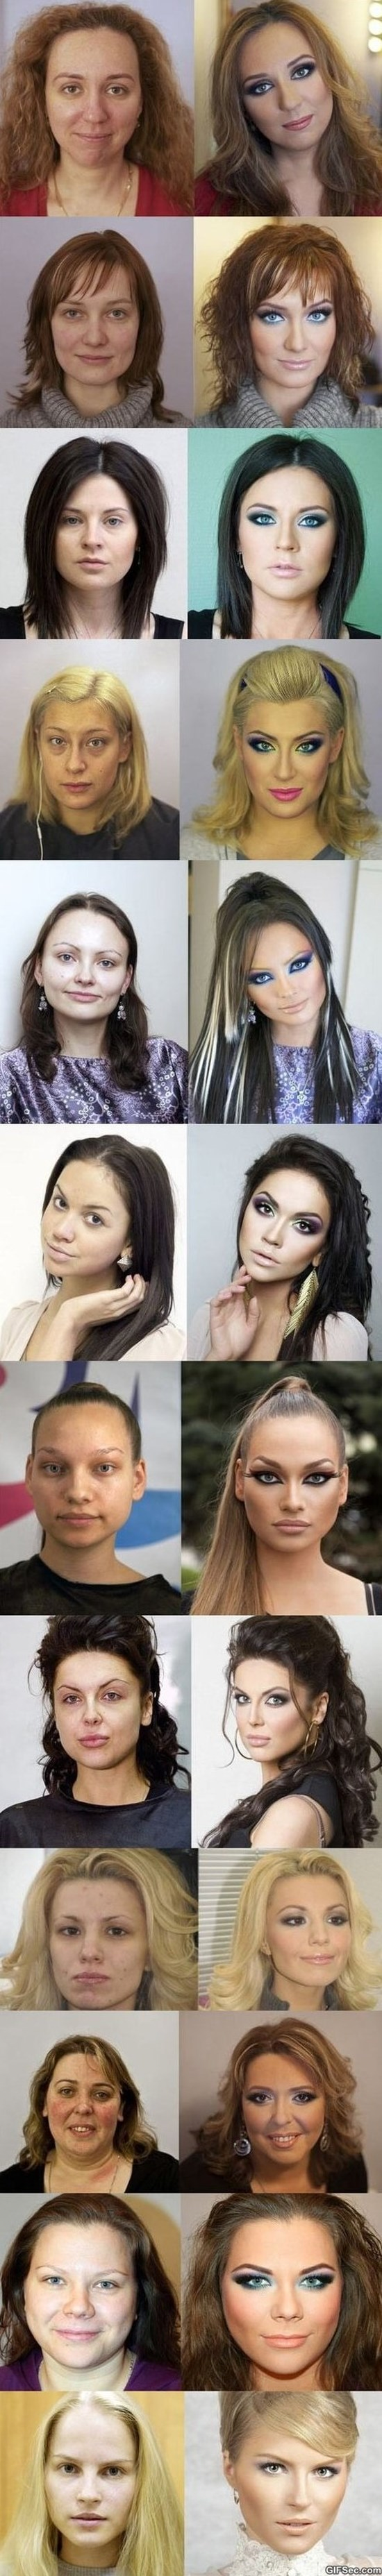 makeup-before-and-after-meme-2015